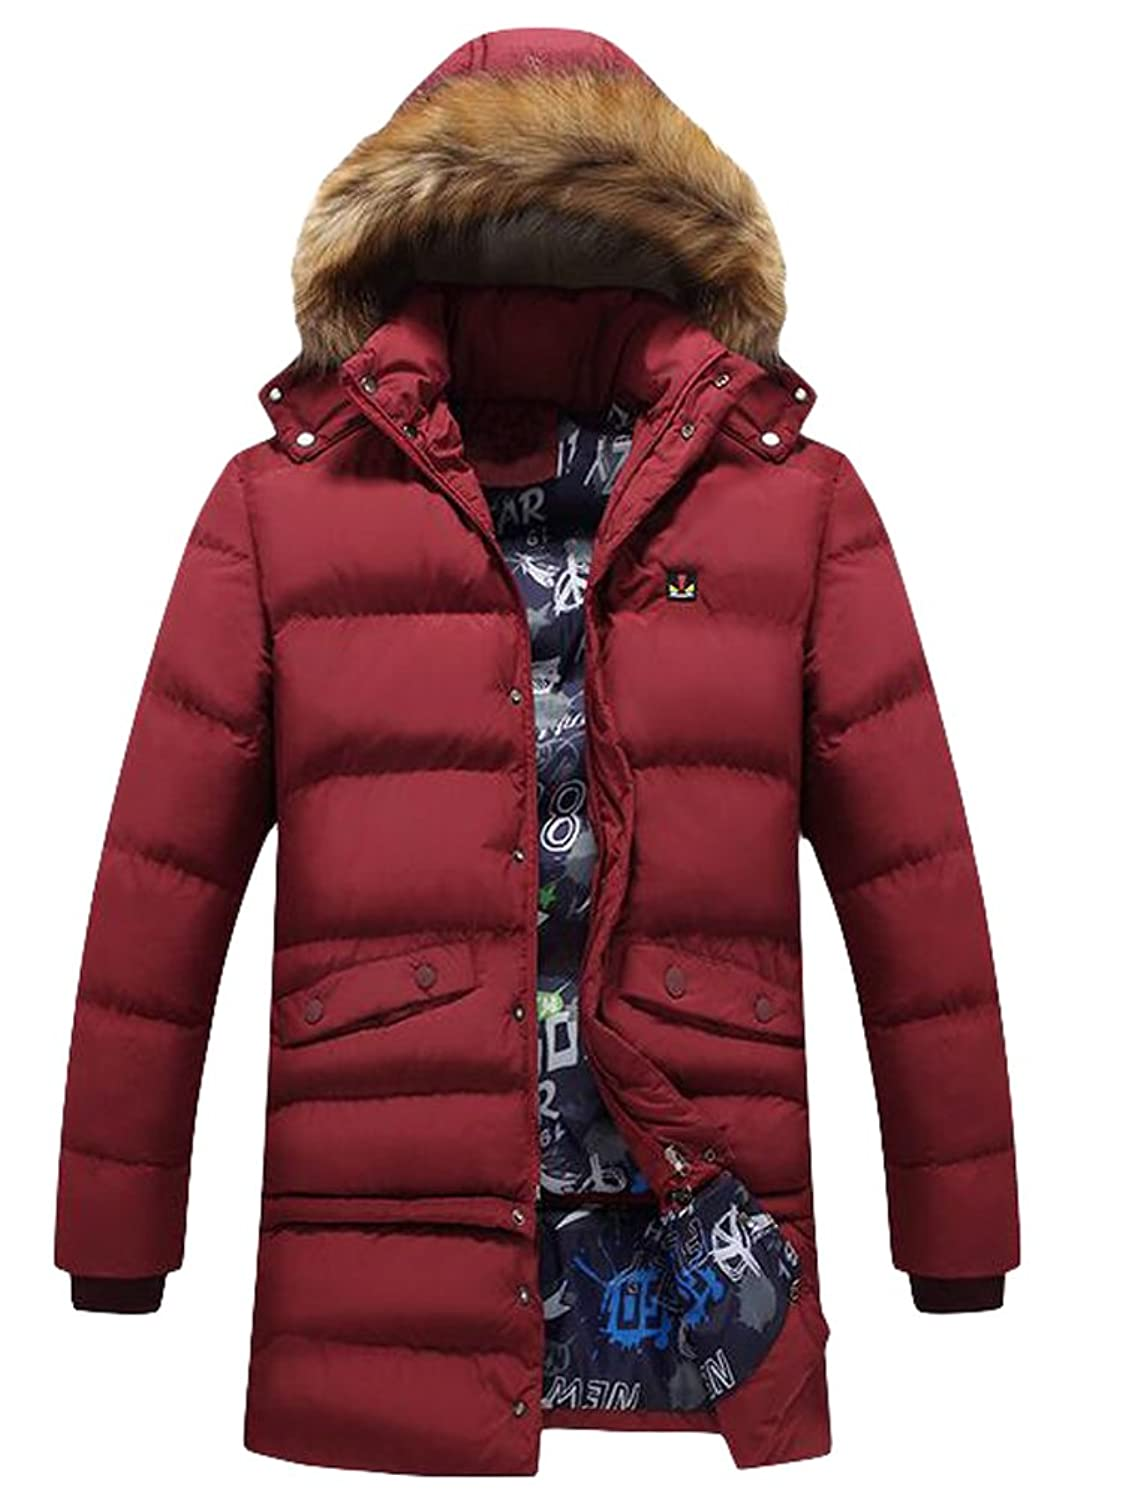 Vogstyle Men's Jacket Hooded Winter Coat